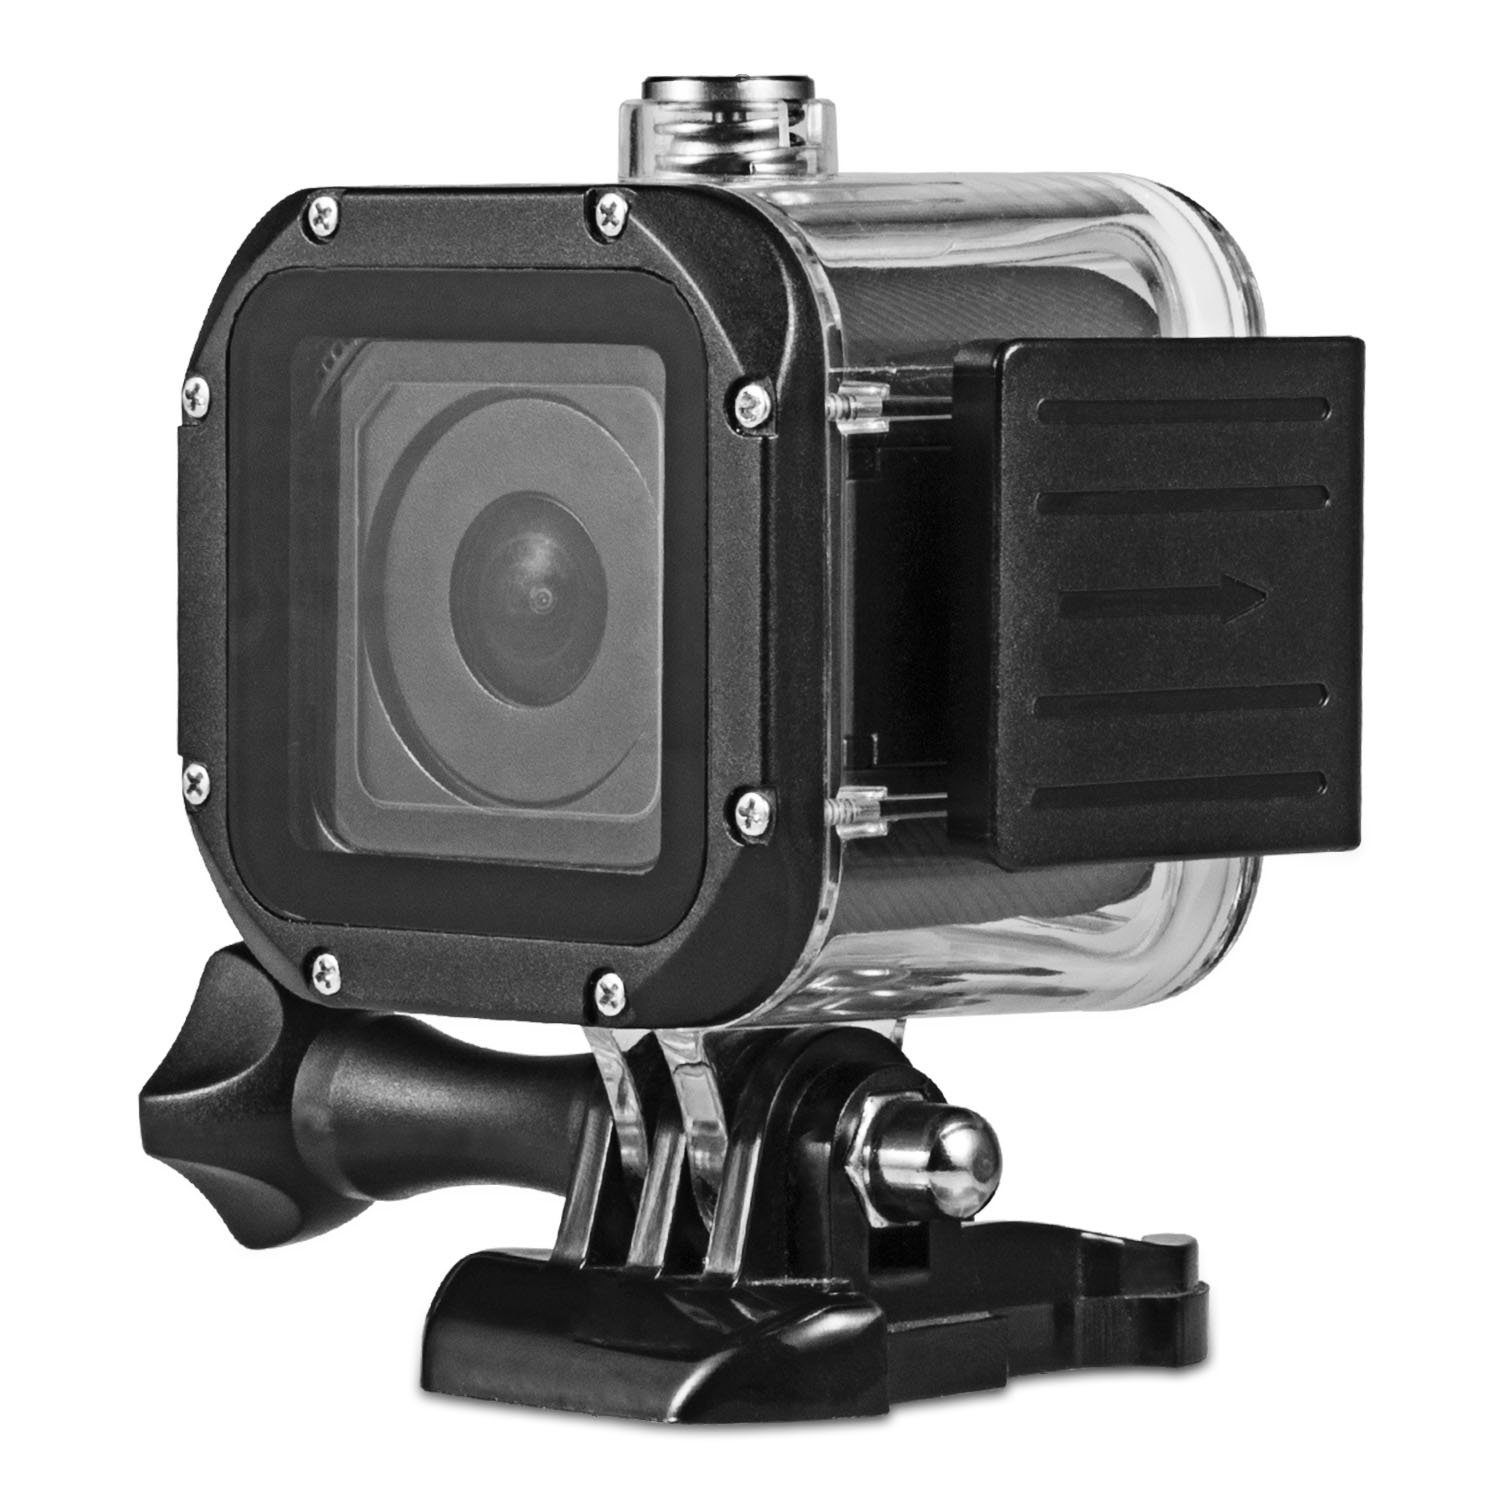 iTrunk Waterproof Housing Case for GoPro Hero 5 Session, Underwater Protective Waterproof Housing Shell with Tempered Glass Lens for GoPro Hero5 Session Hero4 Session